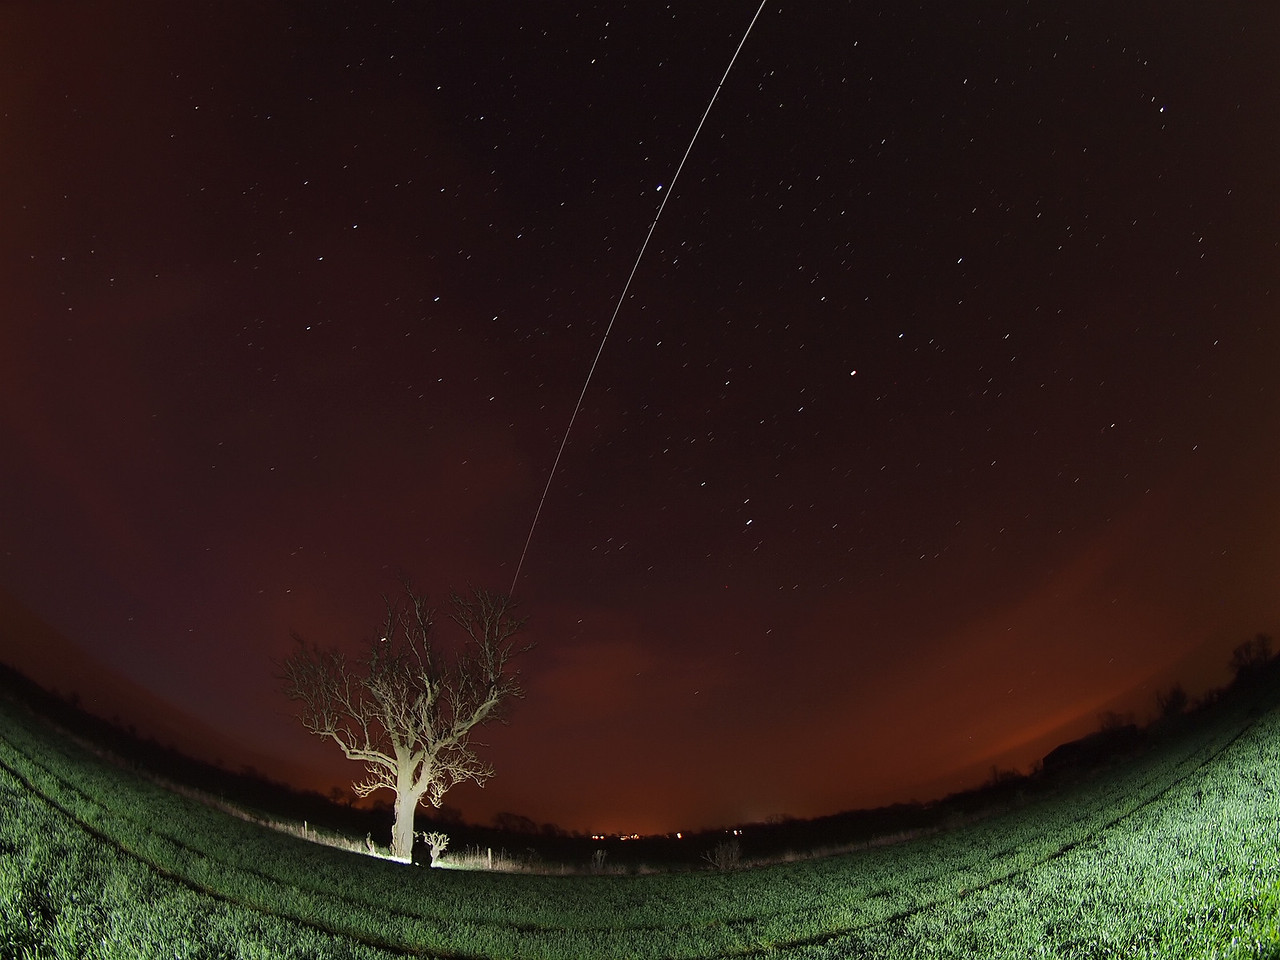 March 29 2012. 0531 hrs ISS pass. Captured with Olympus E5 & 8mm fisheye. Approx half a dozen 15s shots in this final composite. F3.5, ISO 500. Tree and field lit by remote flash.